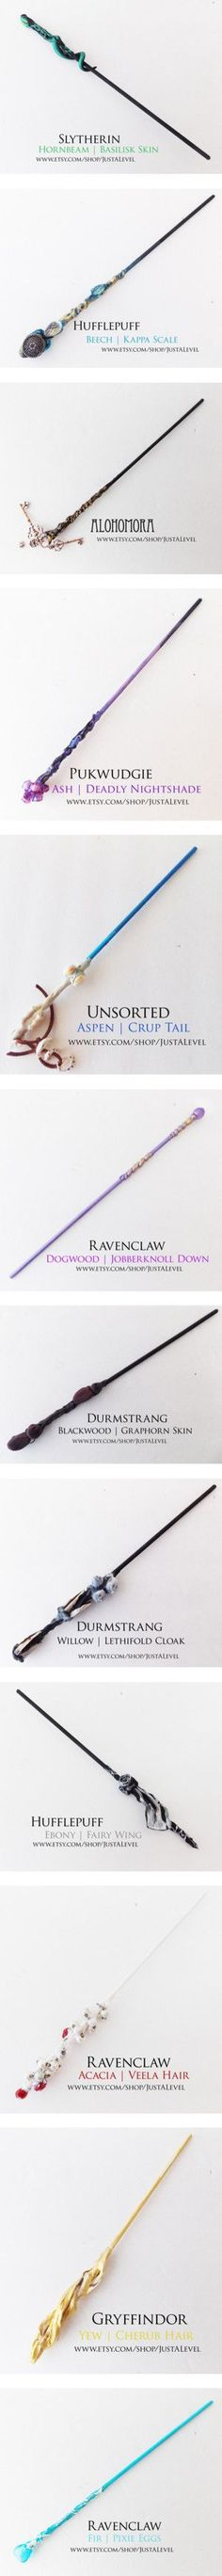 Harry Potter Inspired Wands by demiwitch-of-mischief on Polyvore featuring beauty products, harry potter, wand, weapon, wands, accessories, ravenclaw wand, gryffindor wand, haircare and hair styling tools